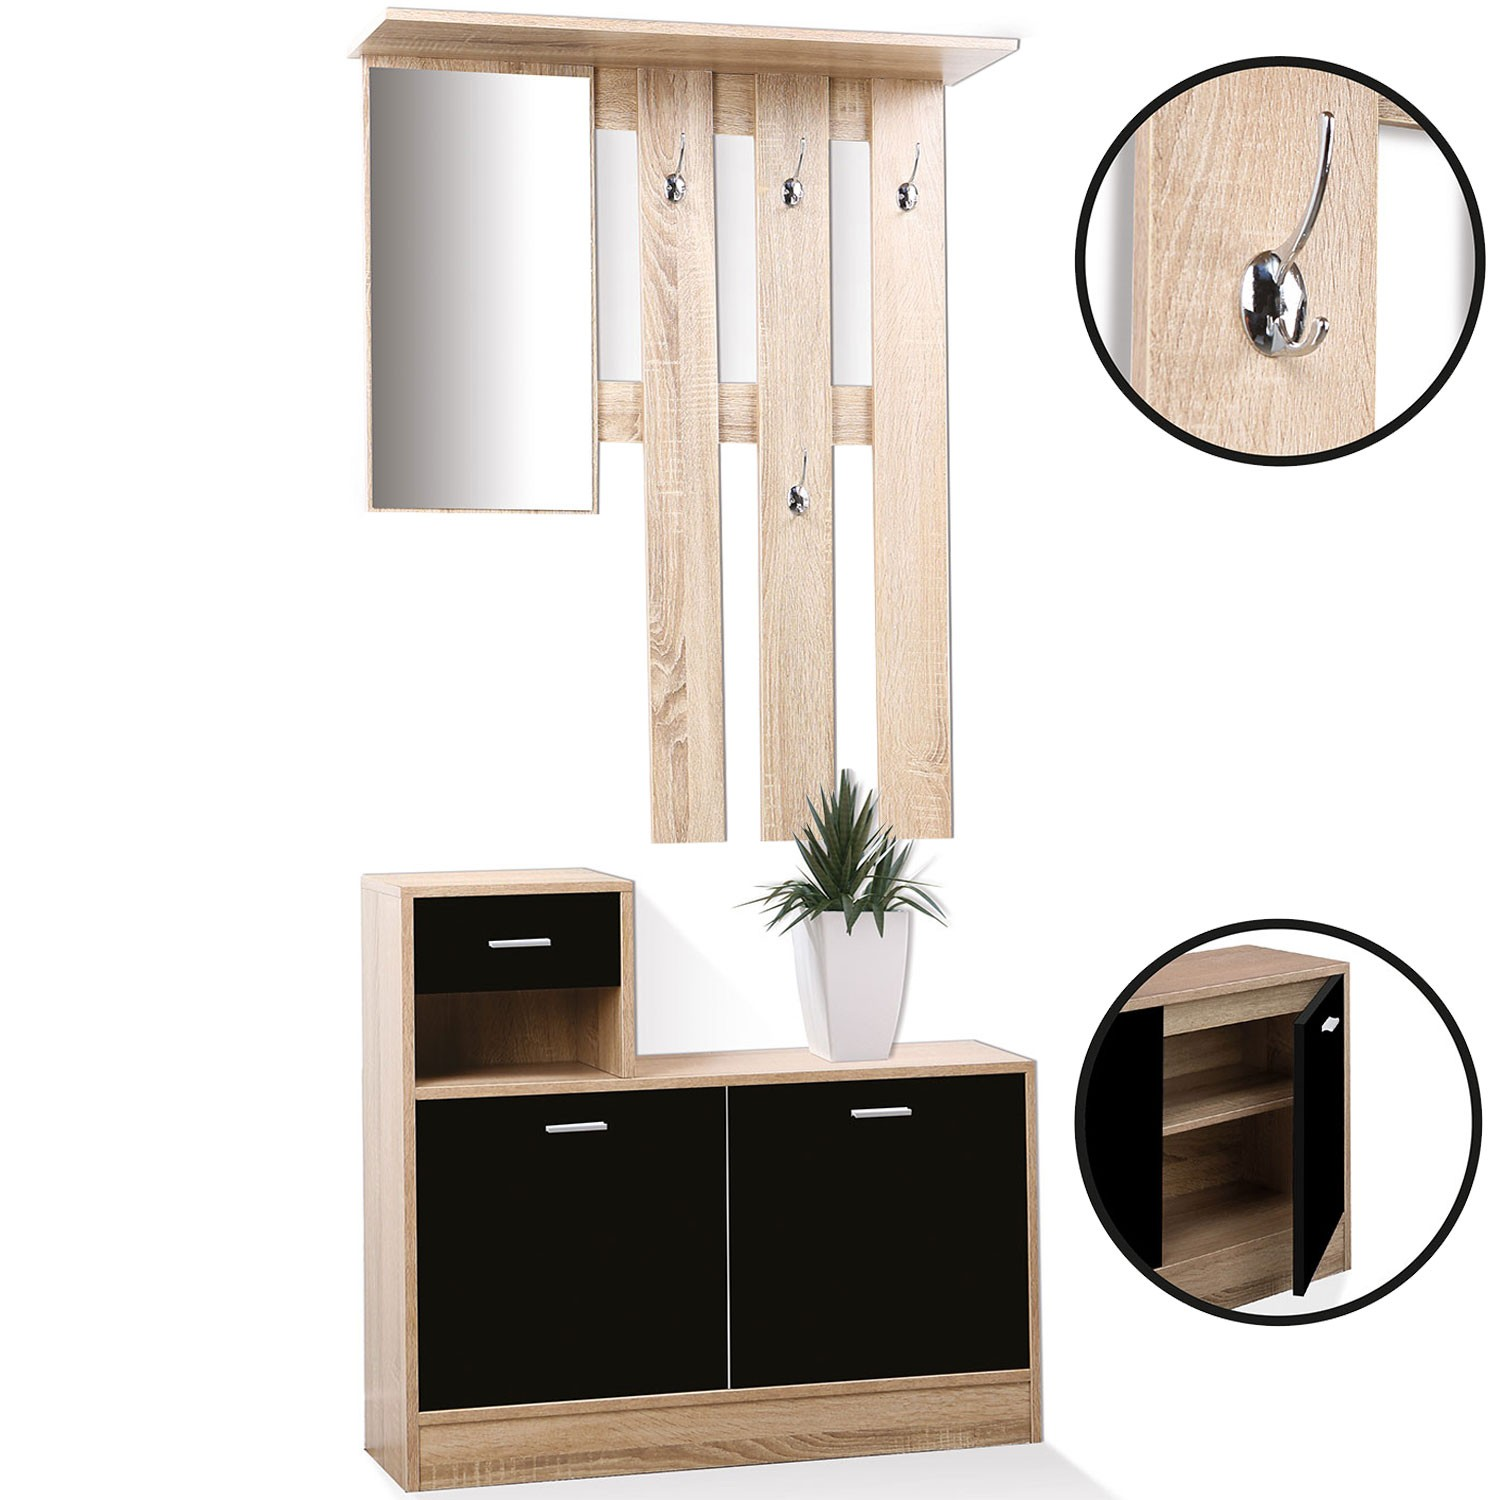 vestiaire d 39 entr e avec miroir design h tre portes noires meubles. Black Bedroom Furniture Sets. Home Design Ideas